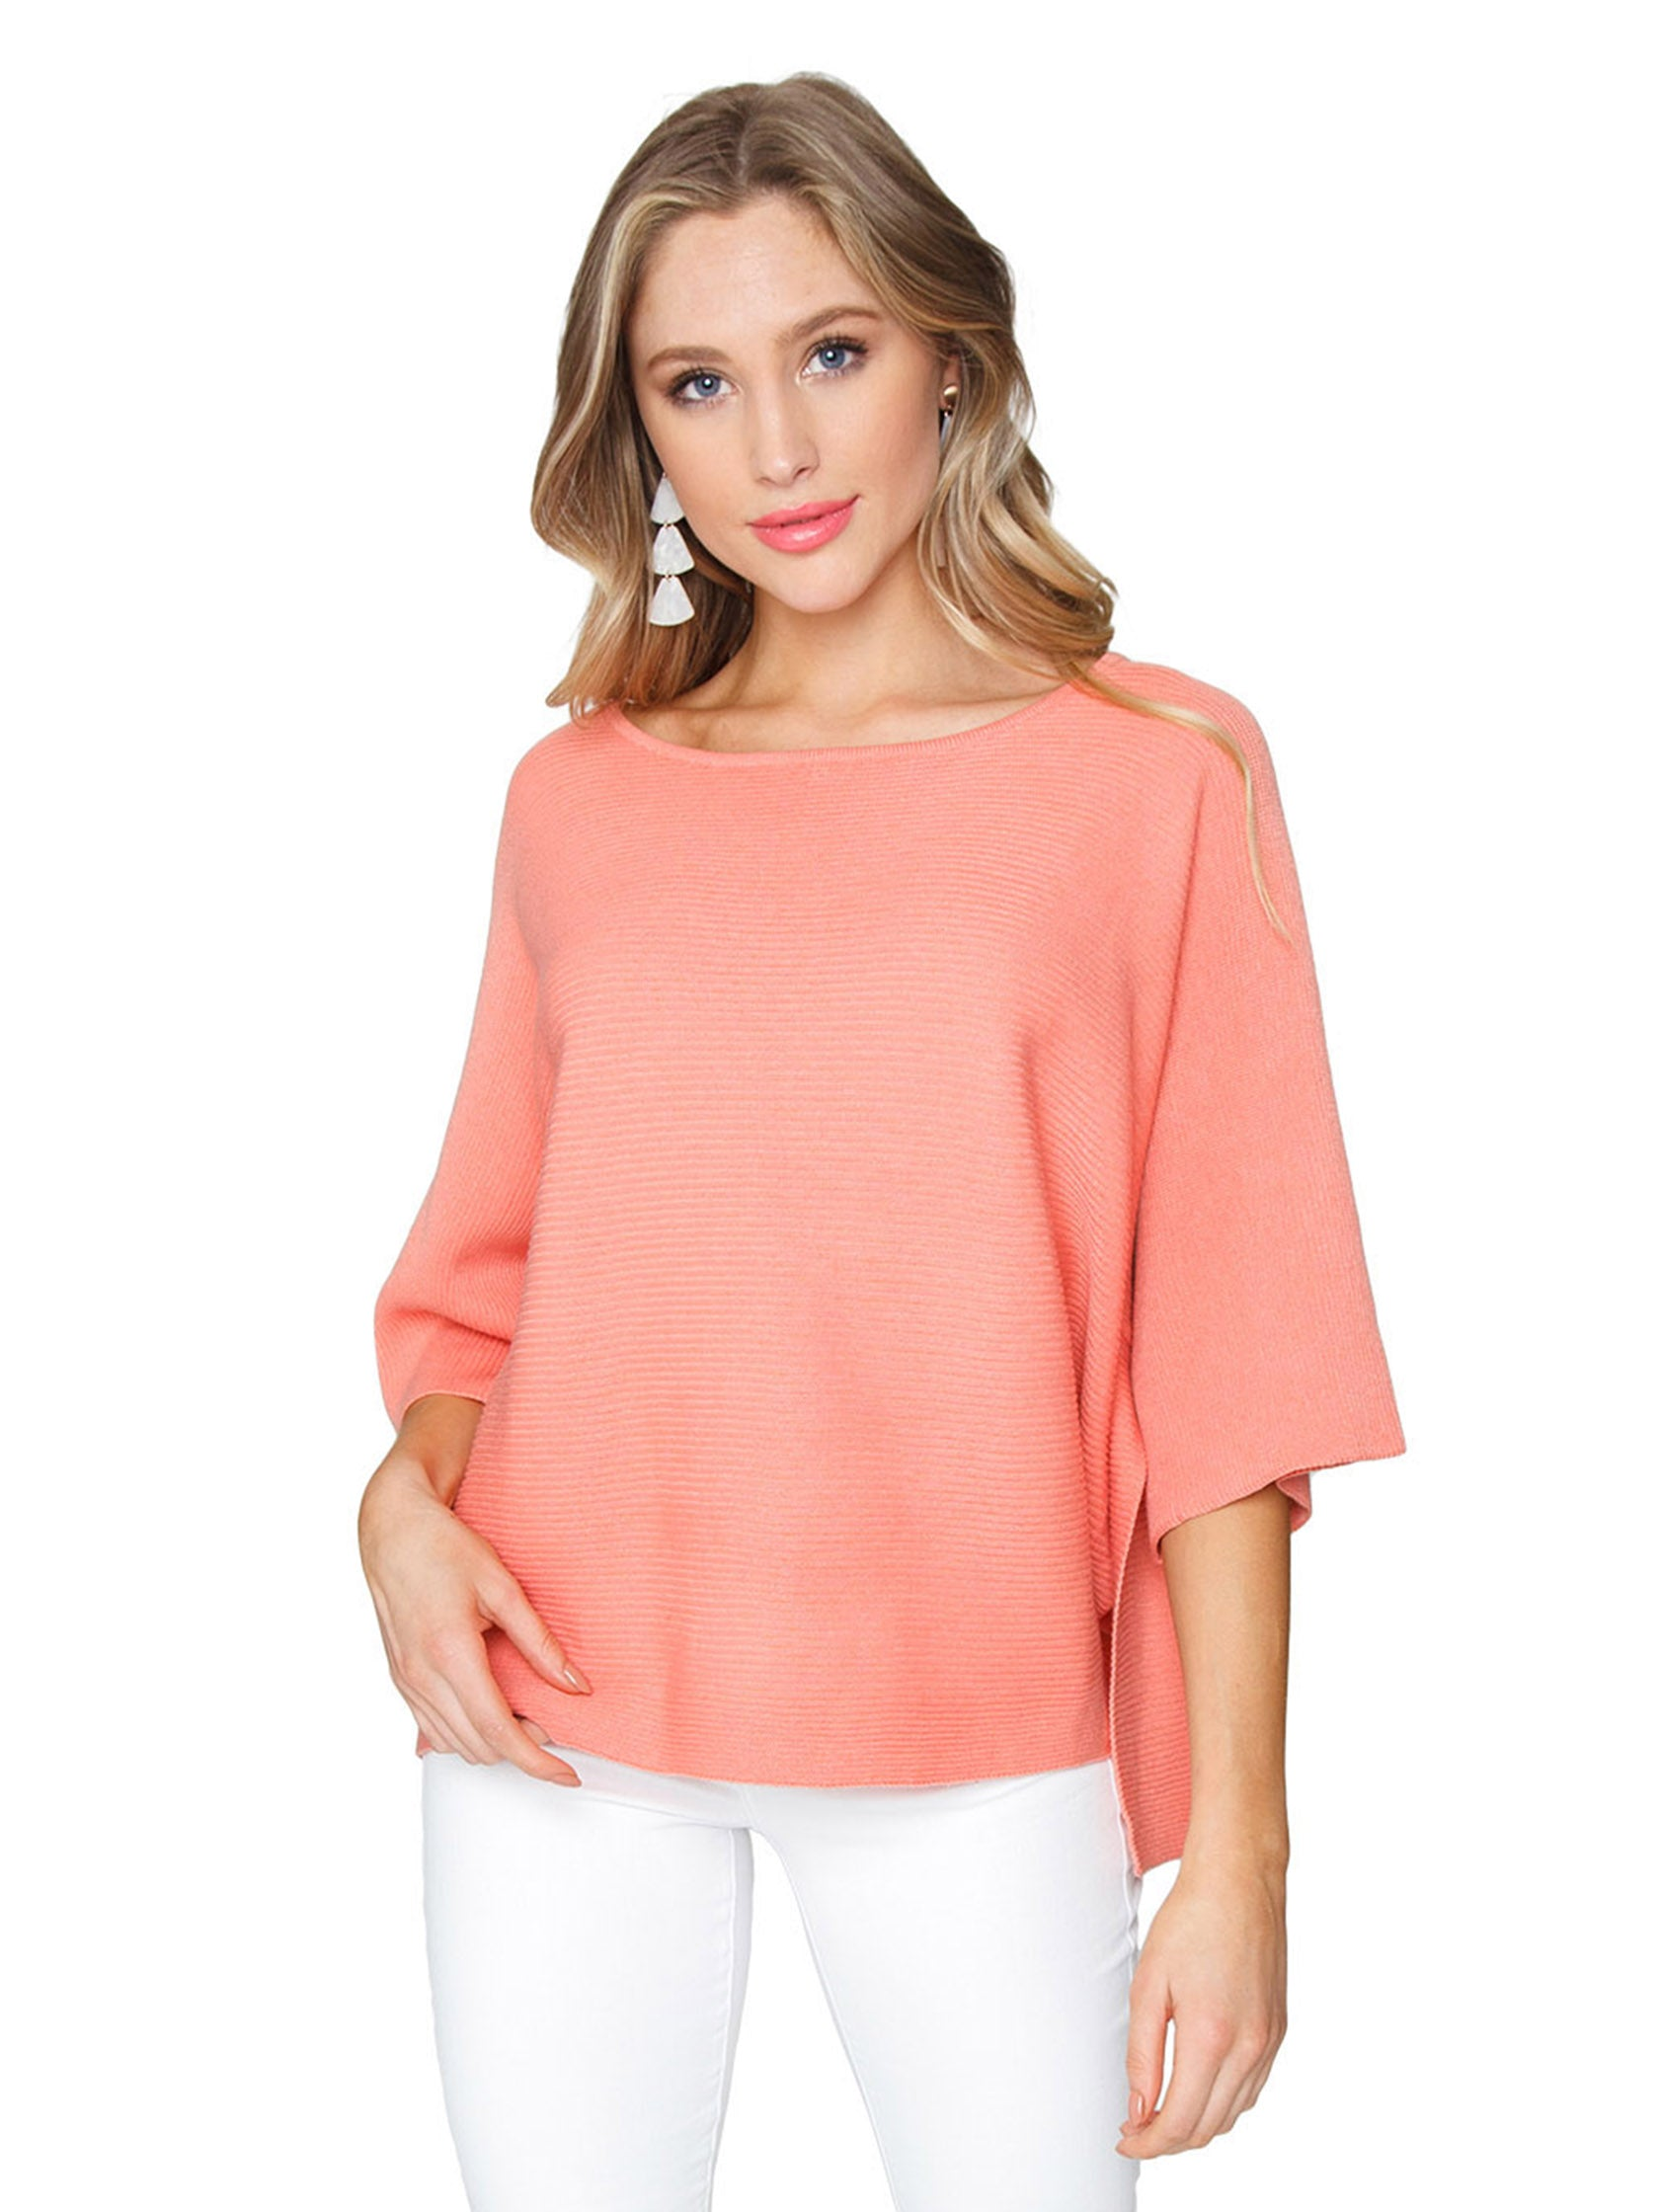 Woman wearing a top rental from FashionPass called Wide Sleeve Knit Top